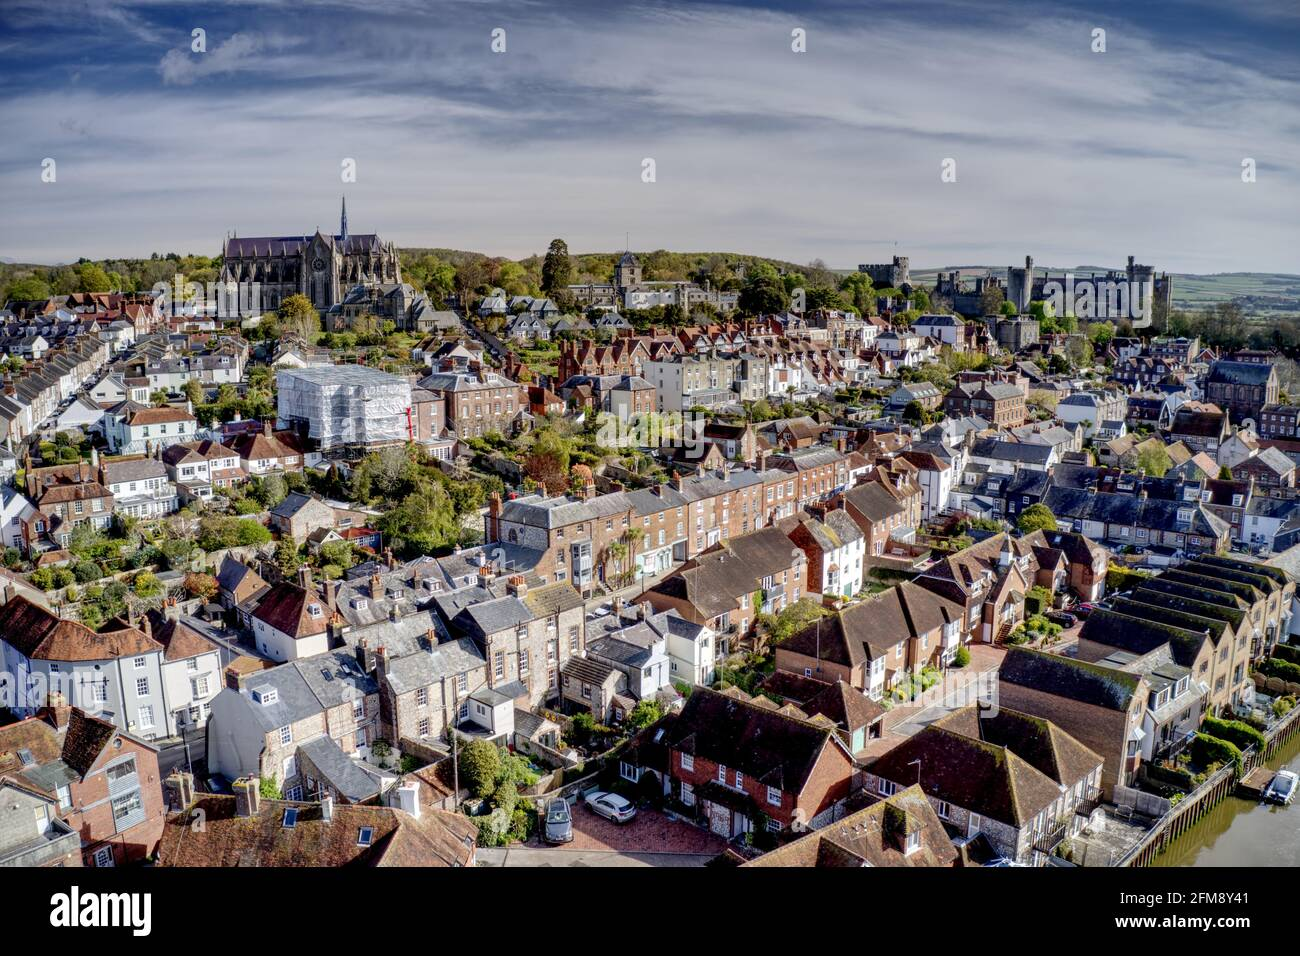 Aerial photo of Arundel Cathedral and Castle in the old historic town of Arundel in Southern England on the banks of the River Arun. Stock Photo